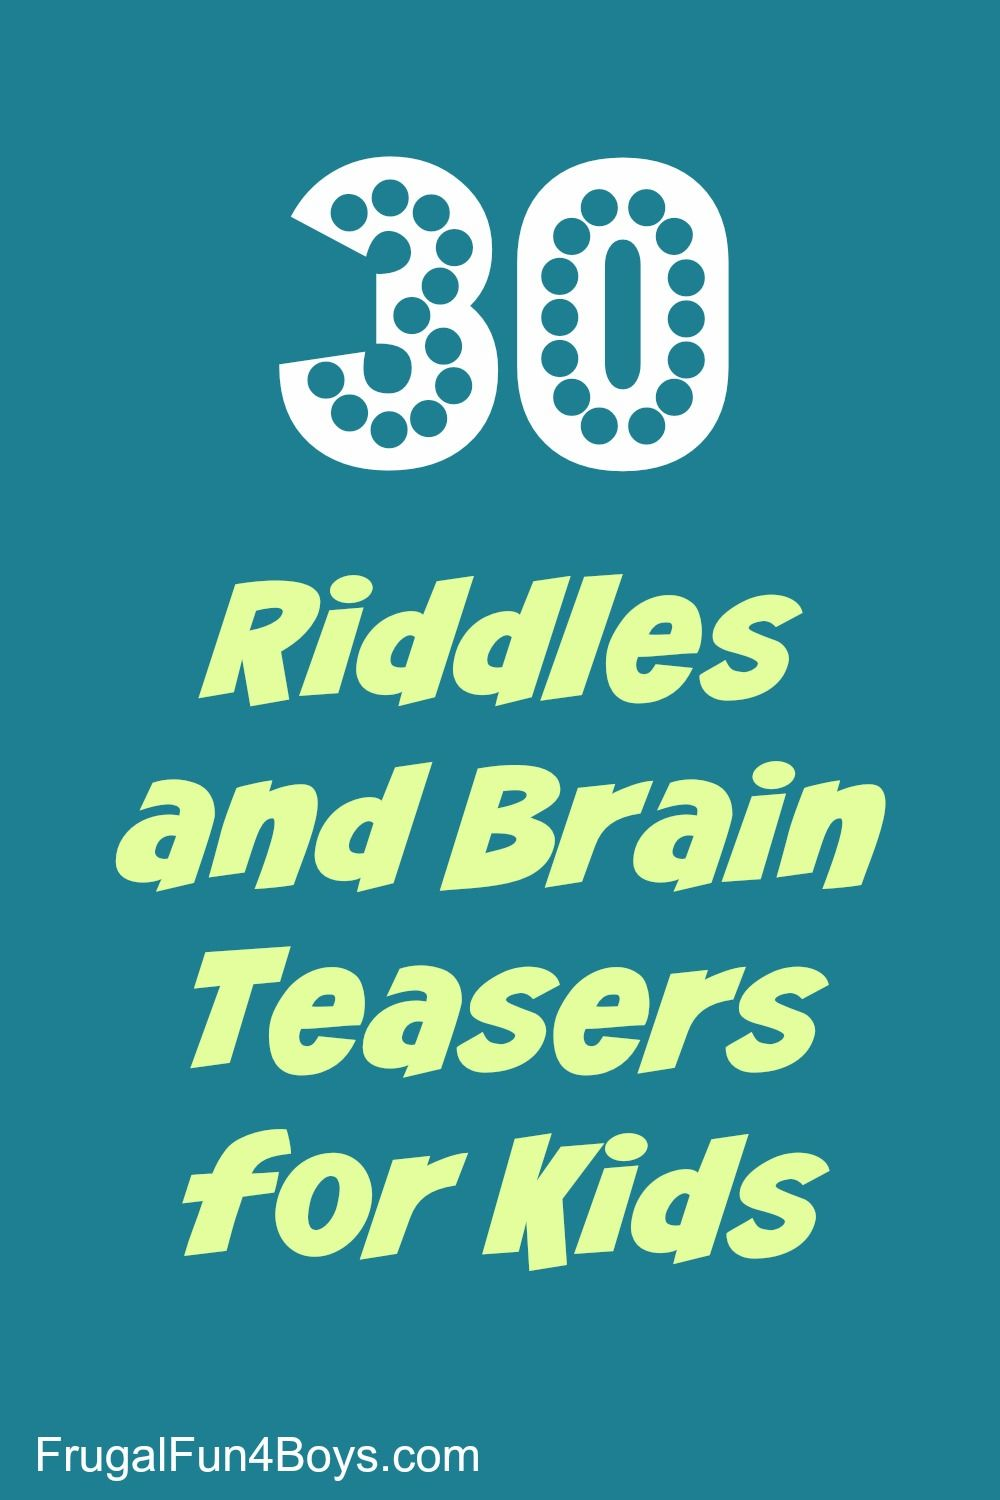 30 Riddles and Brain Teasers for Kids | Pinterest | Brain teasers ...